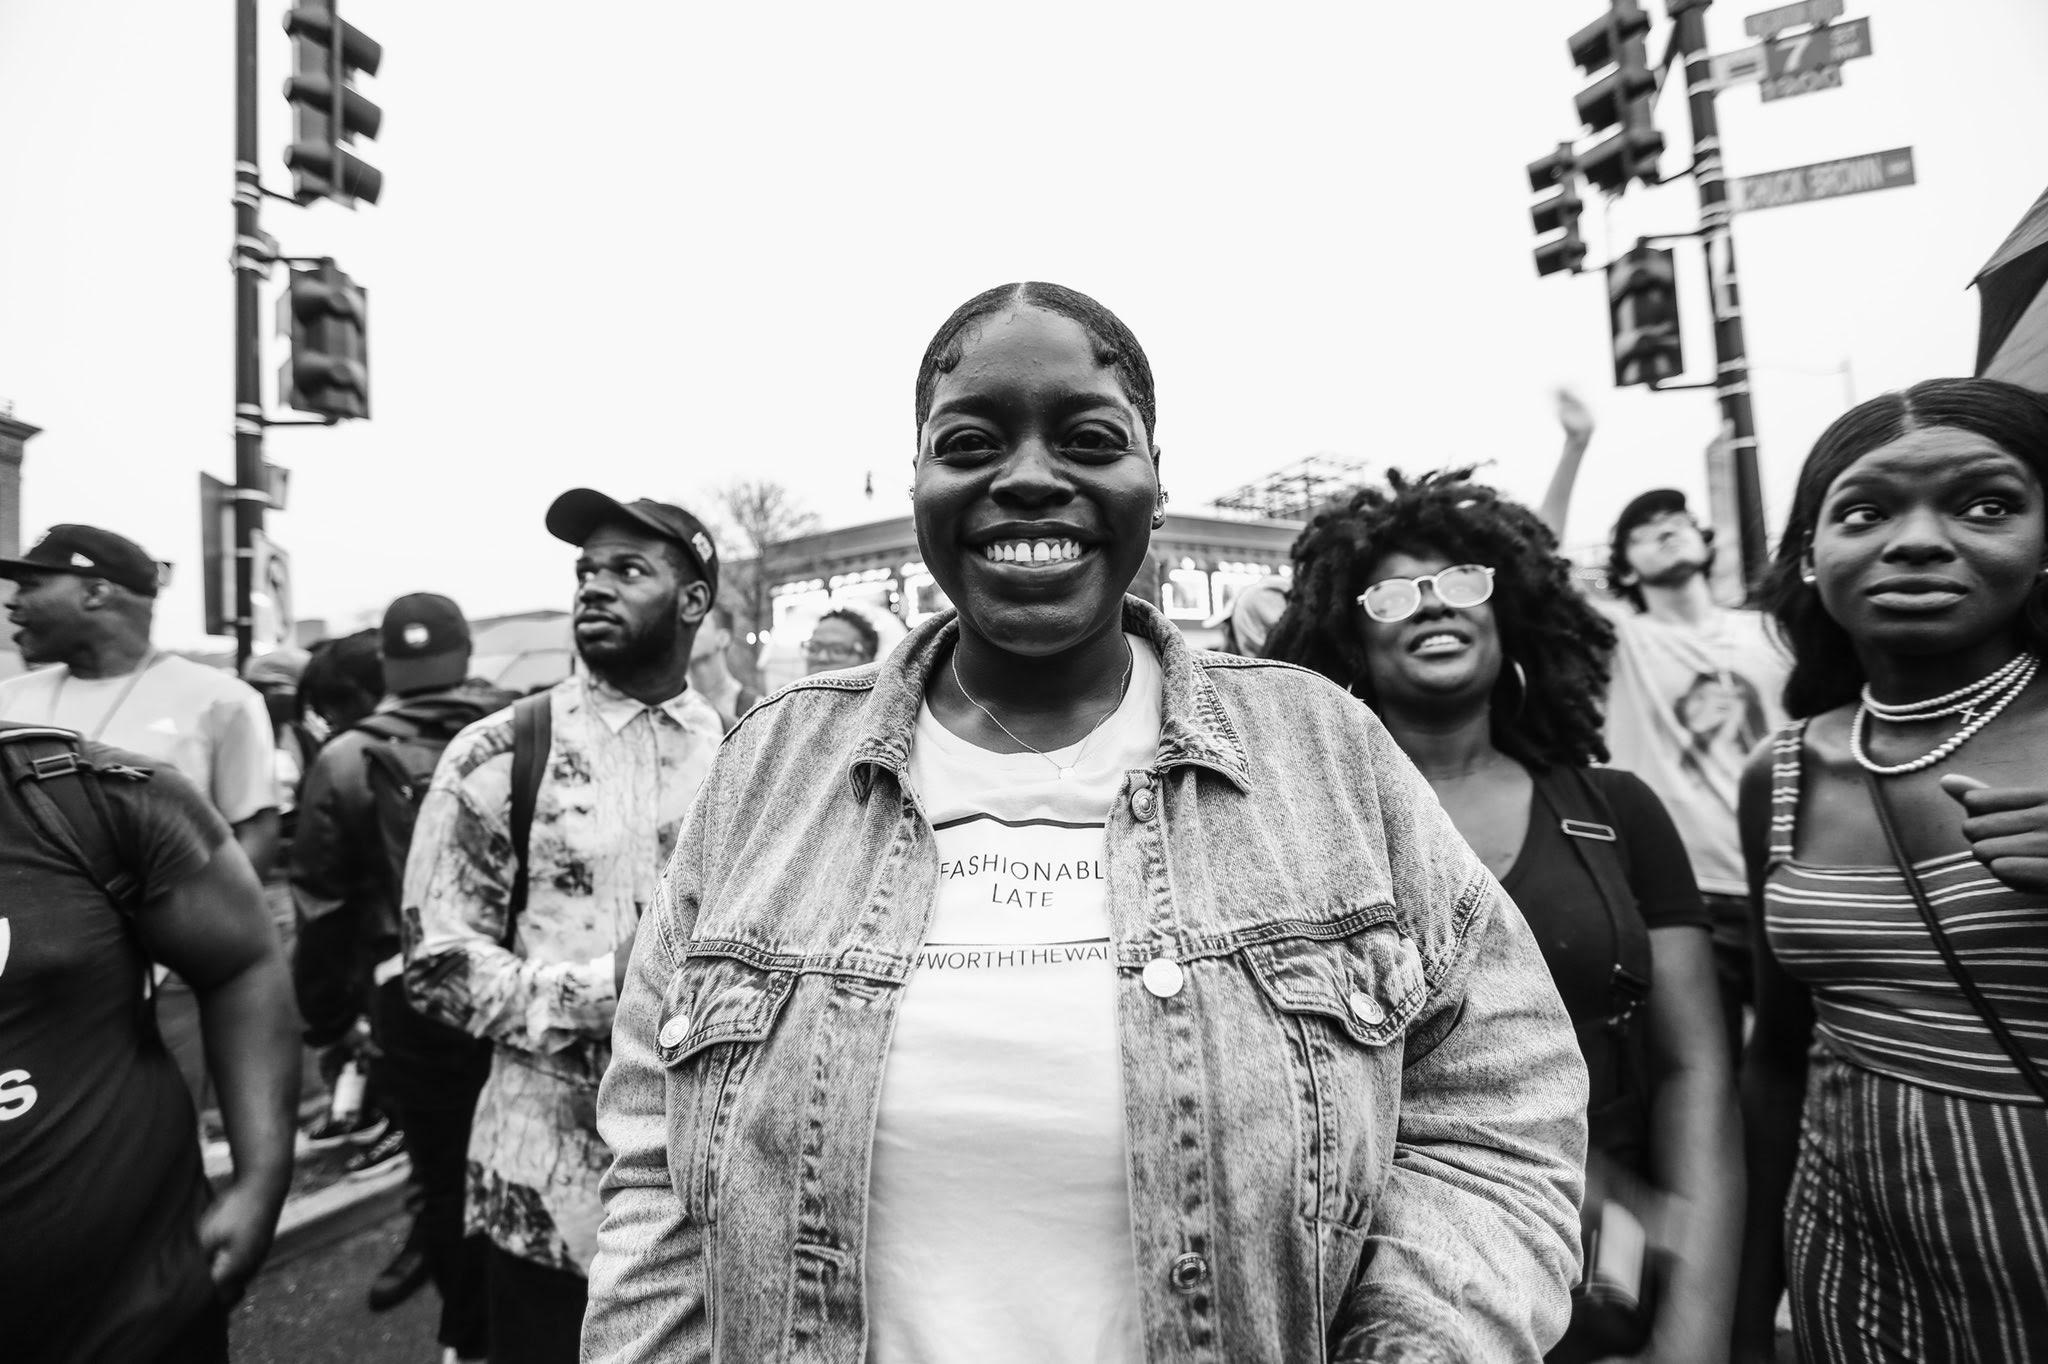 This Howard Grad Is Showing Gentrifiers Just How Loud The Resistance Is With The #DontMuteDC Movement